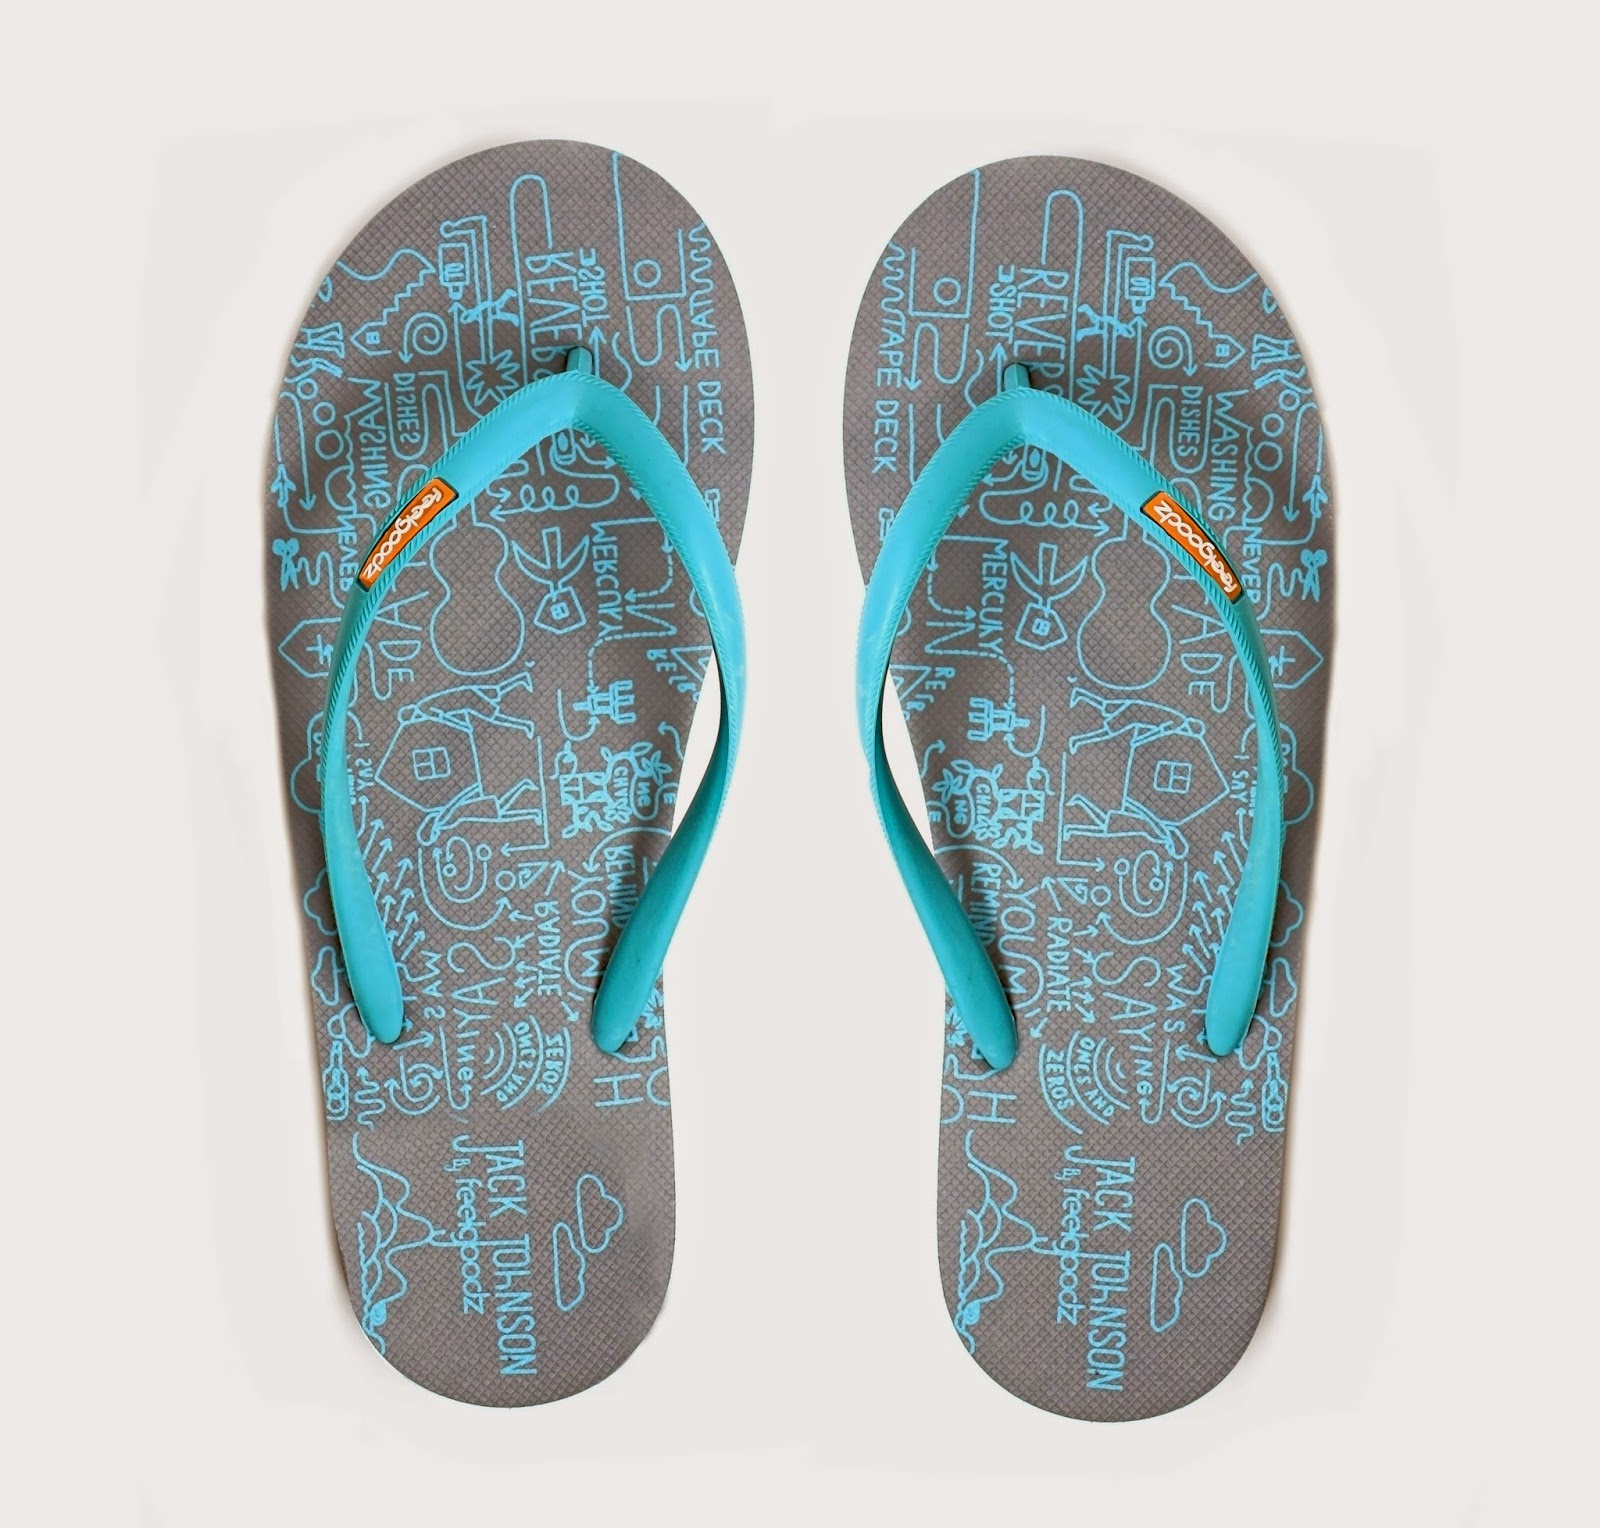 jack johnson graphic flip flop